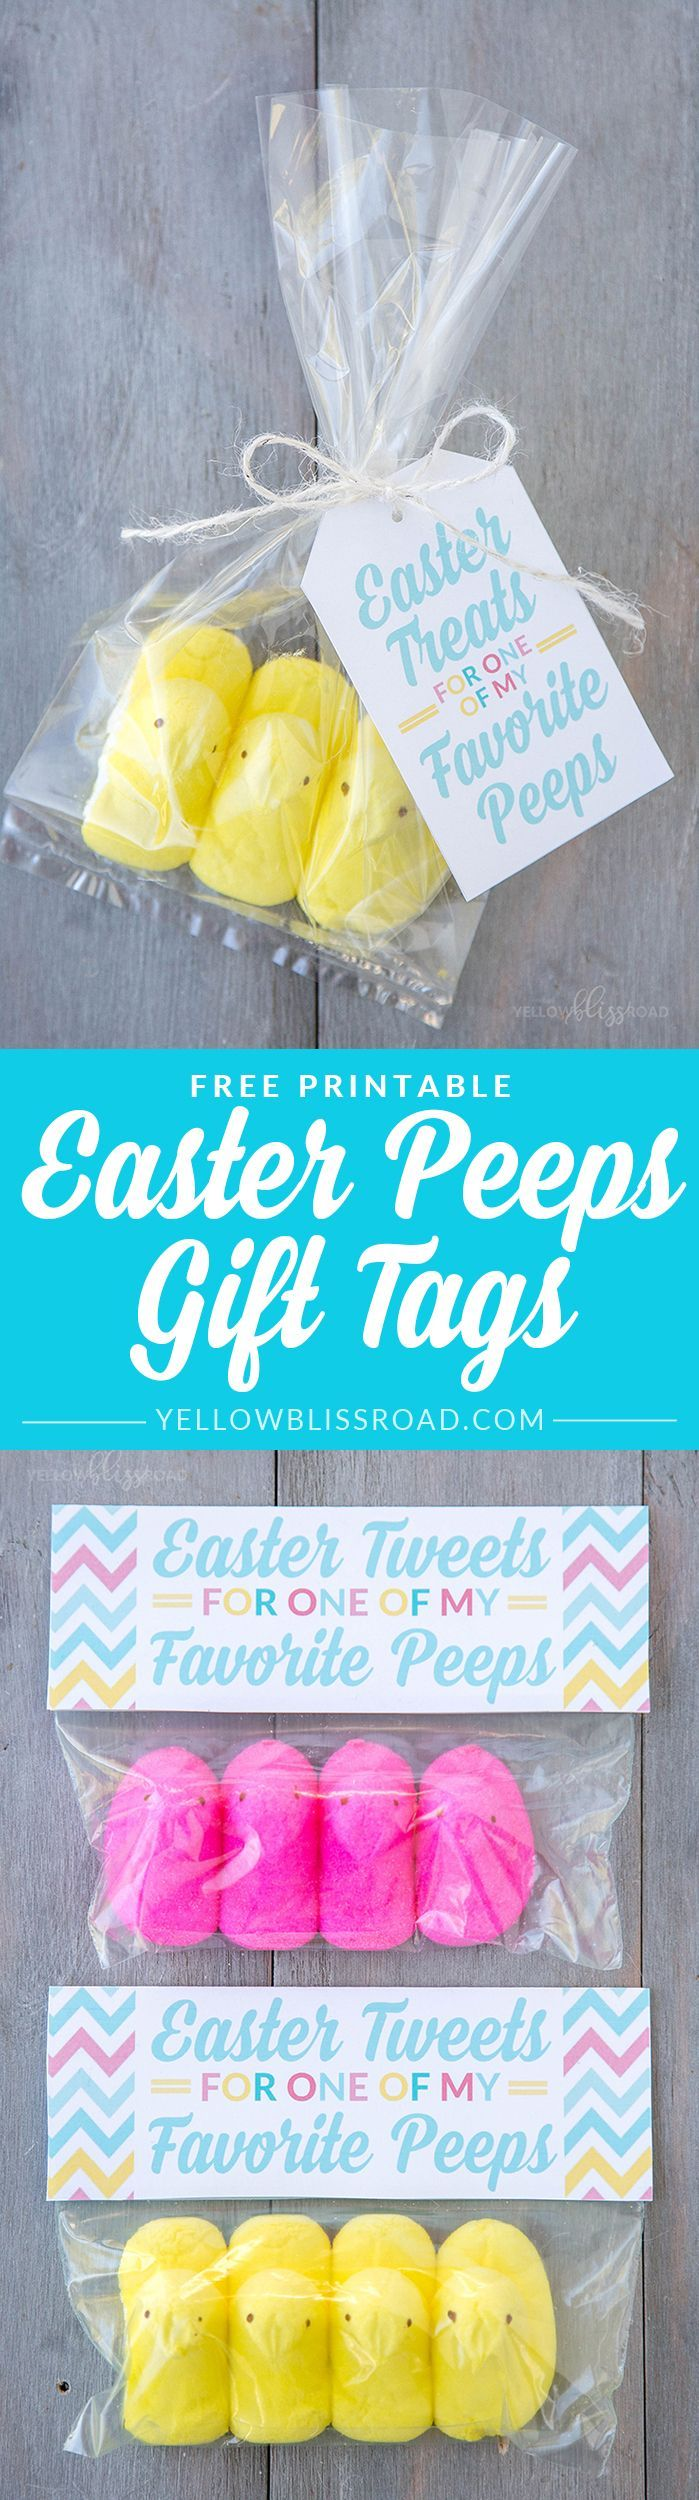 25 unique easter gift ideas on pinterest egg boxes easter free printable peeps easter gift tags use these free printable gift tags to make sweet negle Gallery